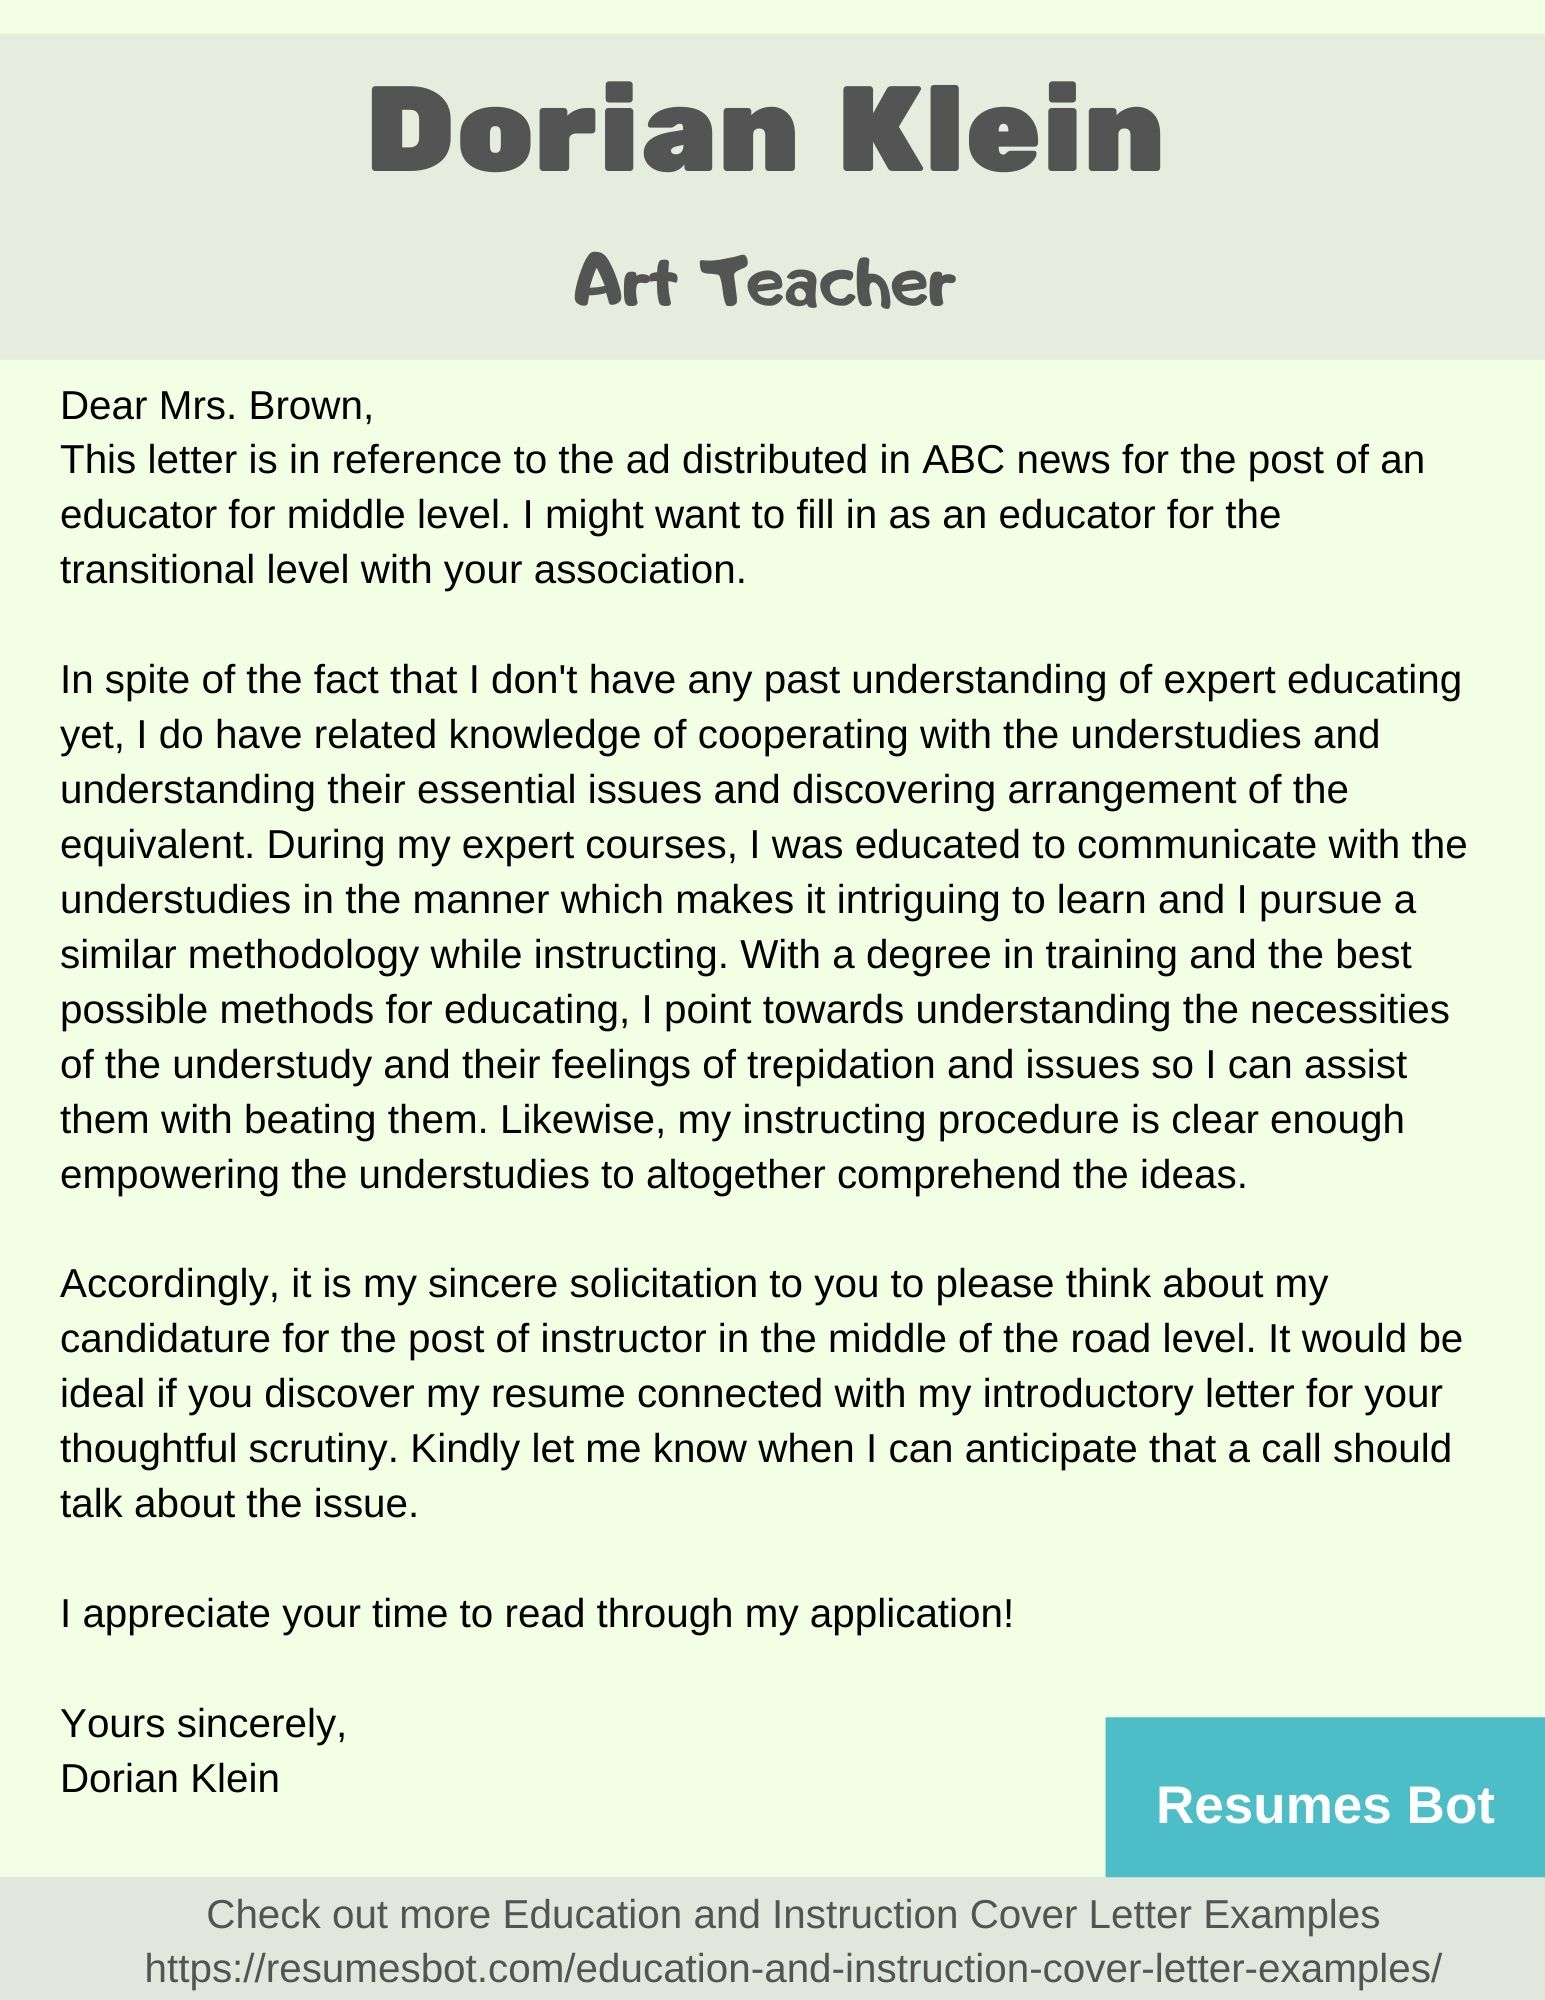 Cover Letter Teaching Examples from resumesbot.com